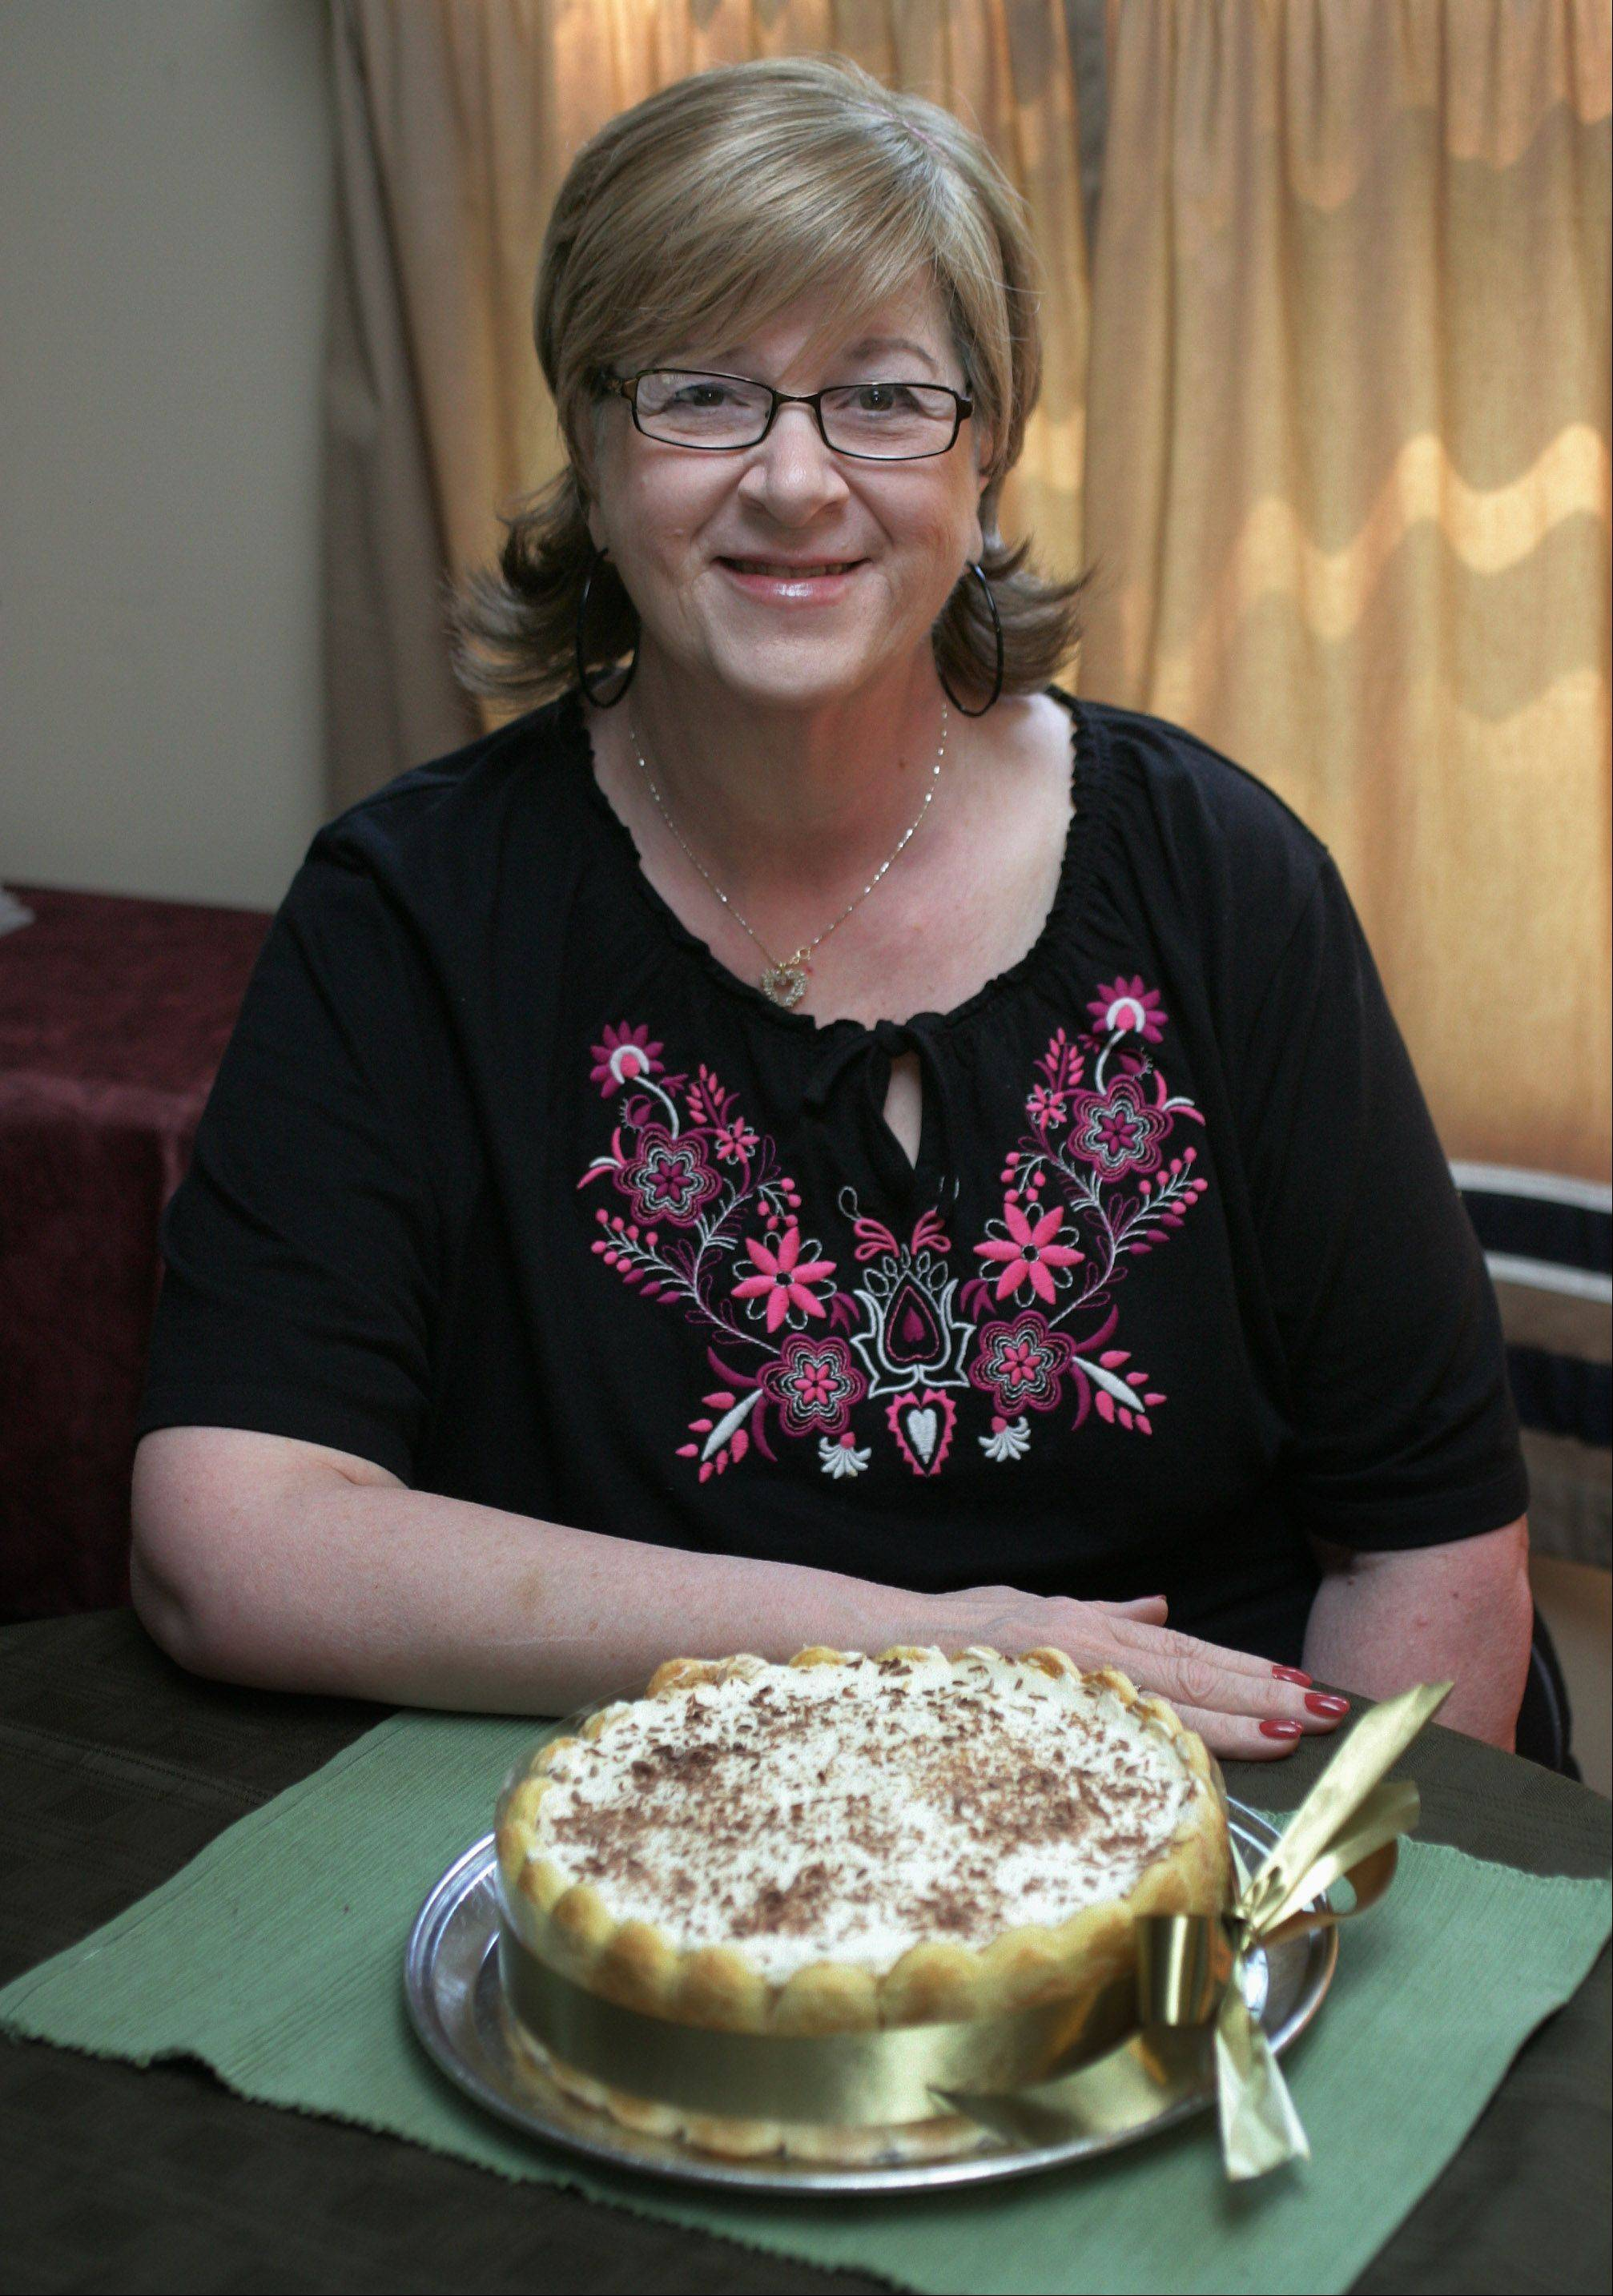 Patricia Kutchins loves to bake so much she has earned the nickname Patty Cake.